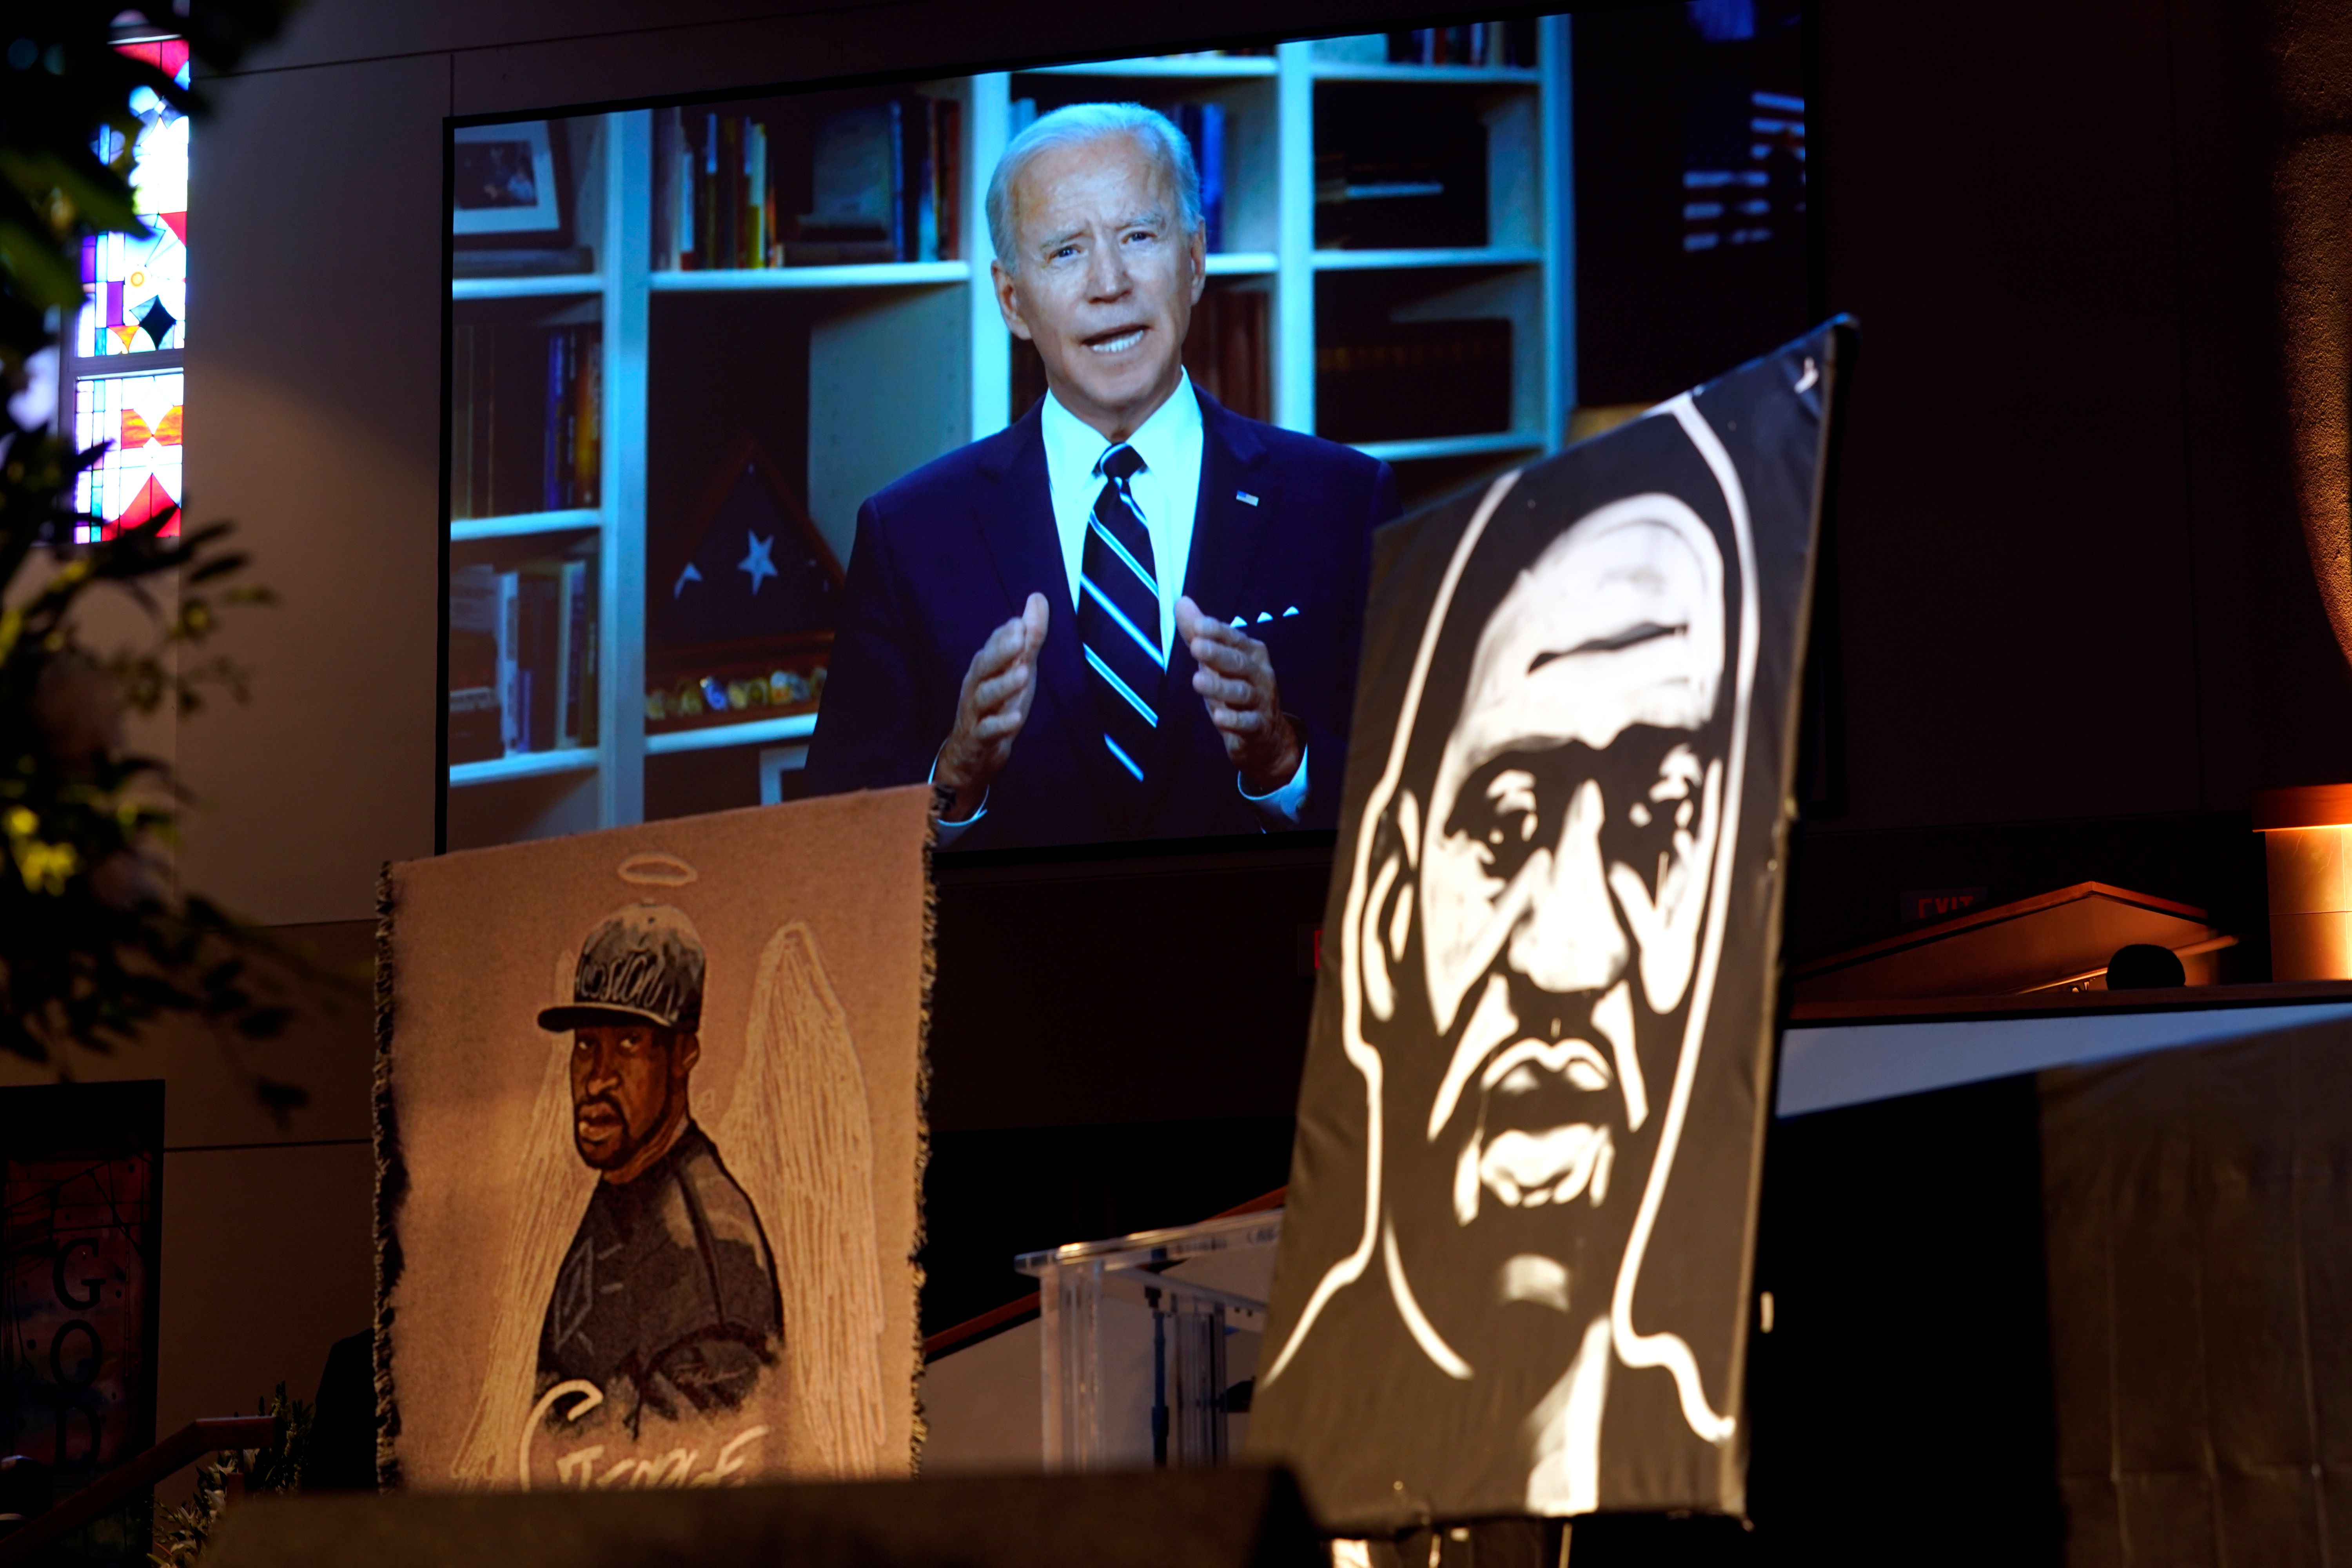 Vice President Joe Biden speaks via video link as family and guests attend the funeral service for George Floyd at The Fountain of Praise Church on June 9, 2020, in Houston. (Photo: David J. Phillip/Pool/AFP via Getty Images)